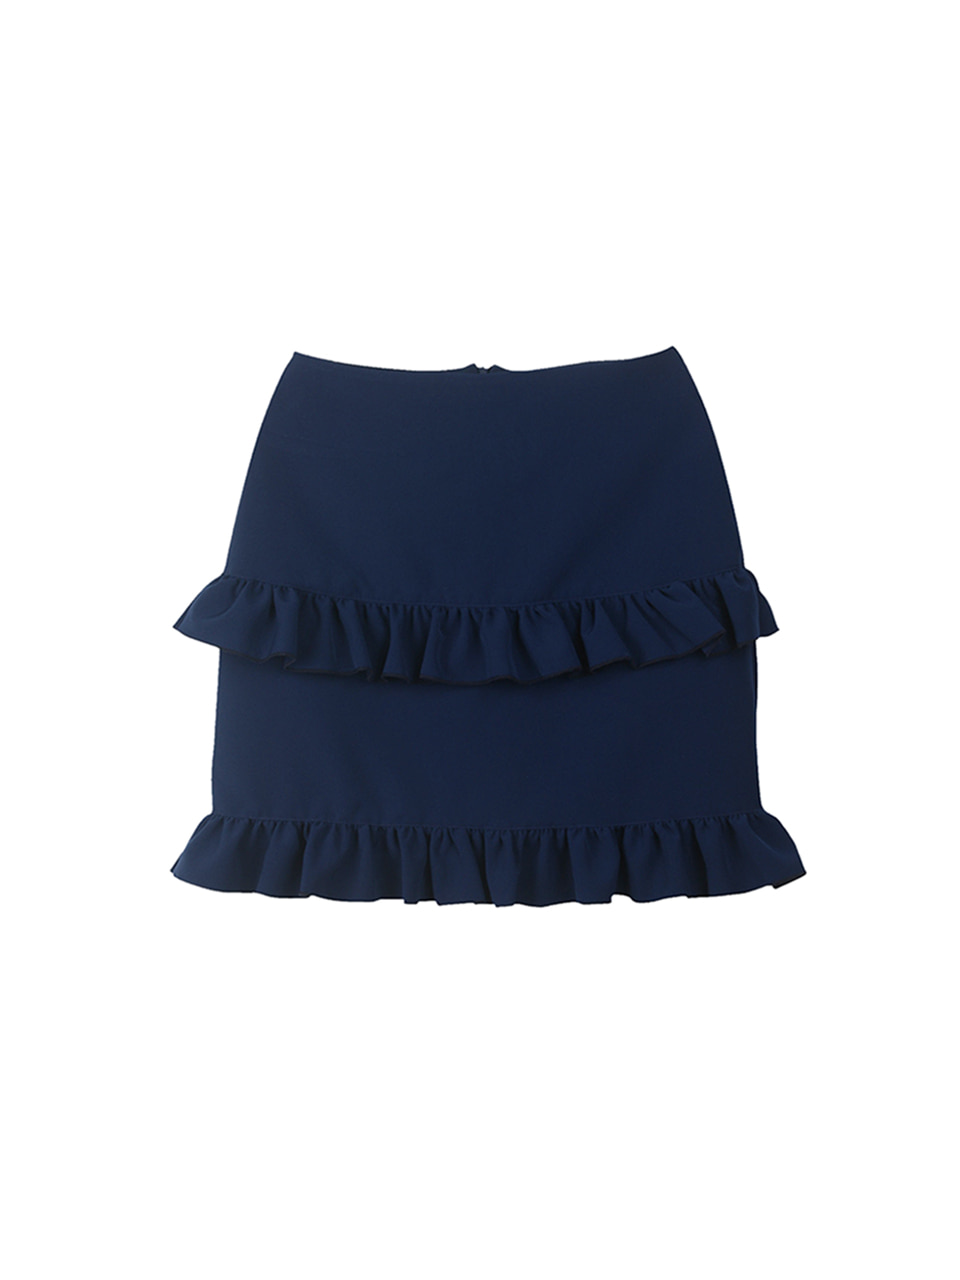 double frill skirt_navy